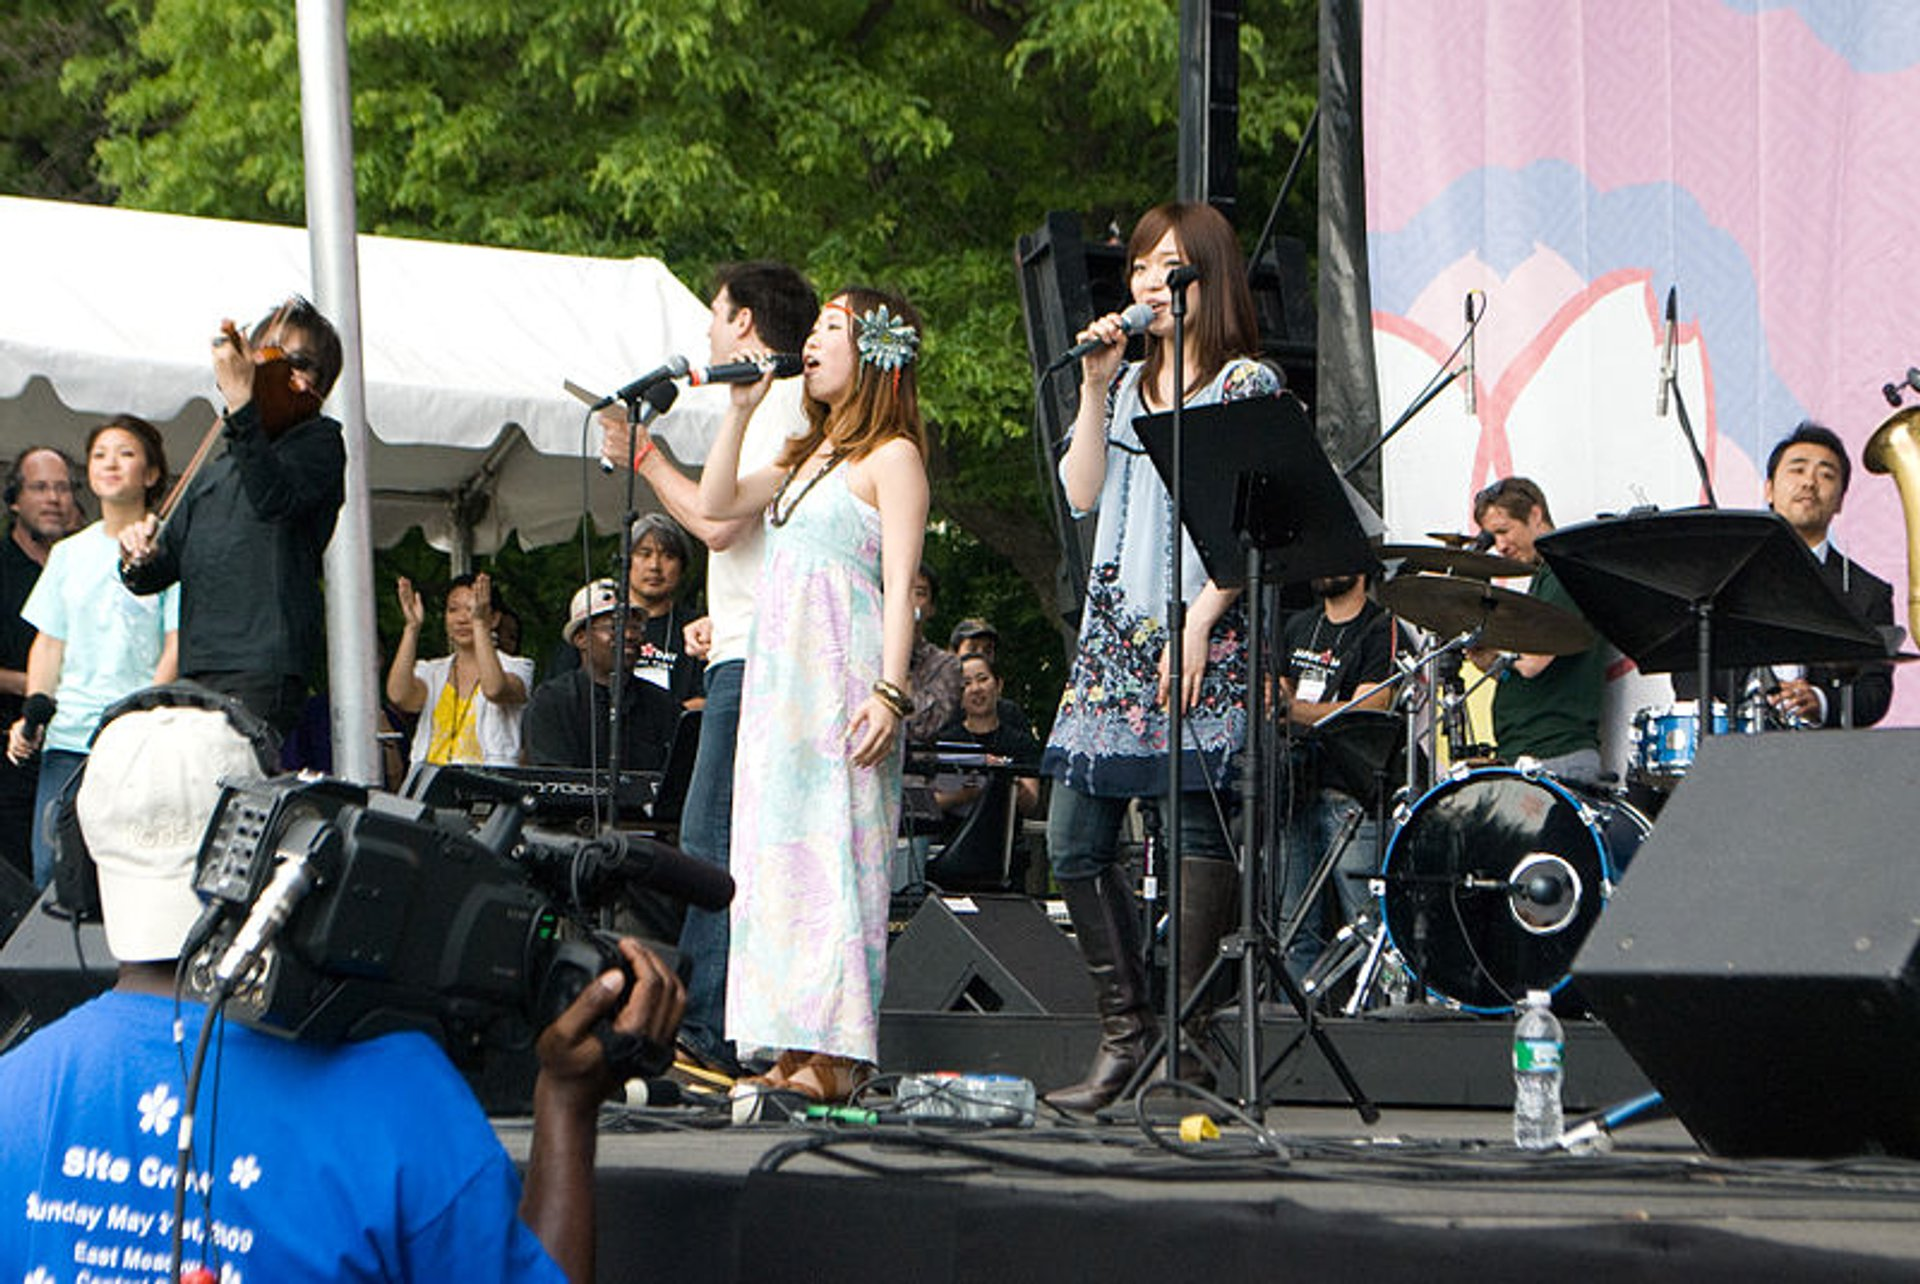 Ai Kawashima (center right) and Tomoko Nagashima (center left) of orange pekoe live at Japan Day in Central Park, New York City 2020